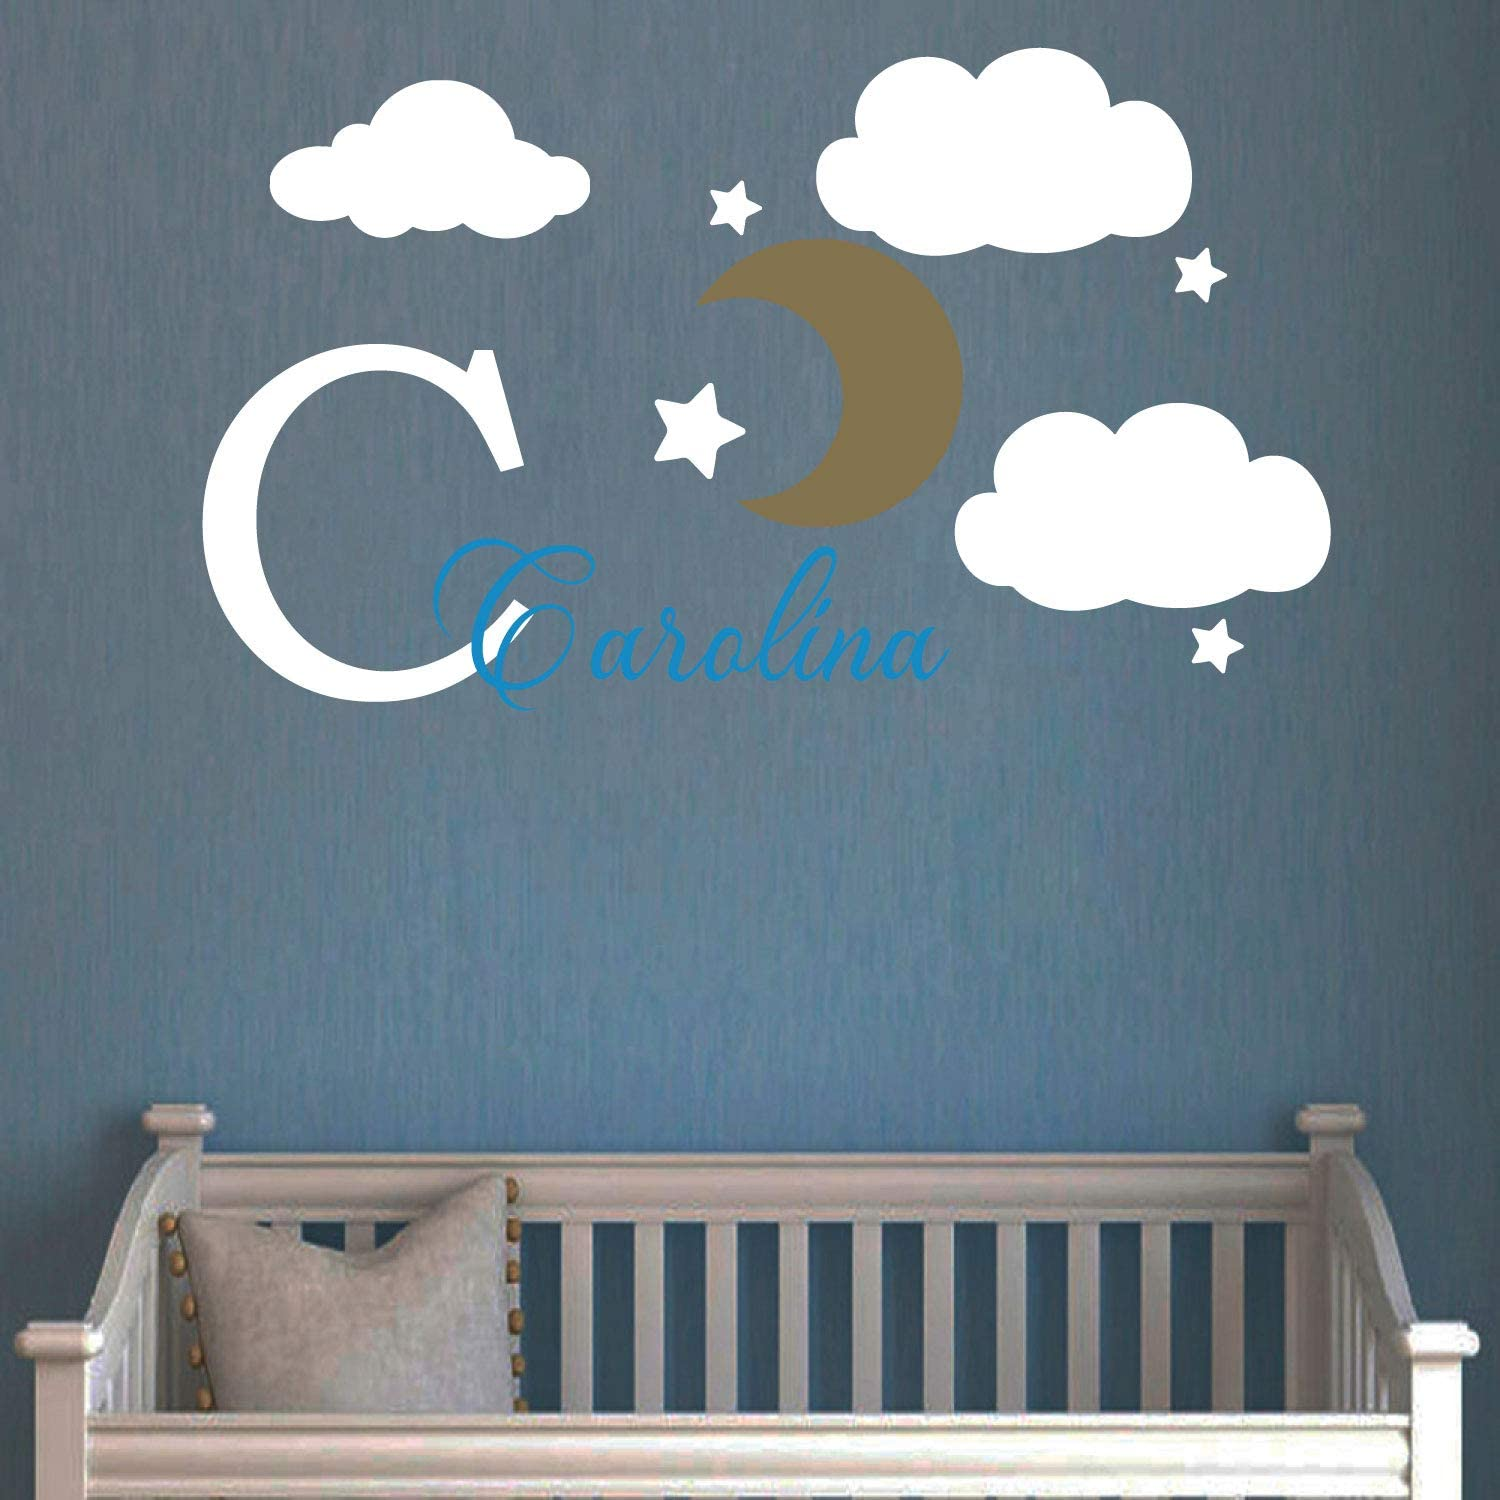 Custom Name & Initial Stars Clouds Baby Boy and Girl Nursery Wall Decal Vinyl Sticker for Home Bedthroom Decor ND (Medium W 32